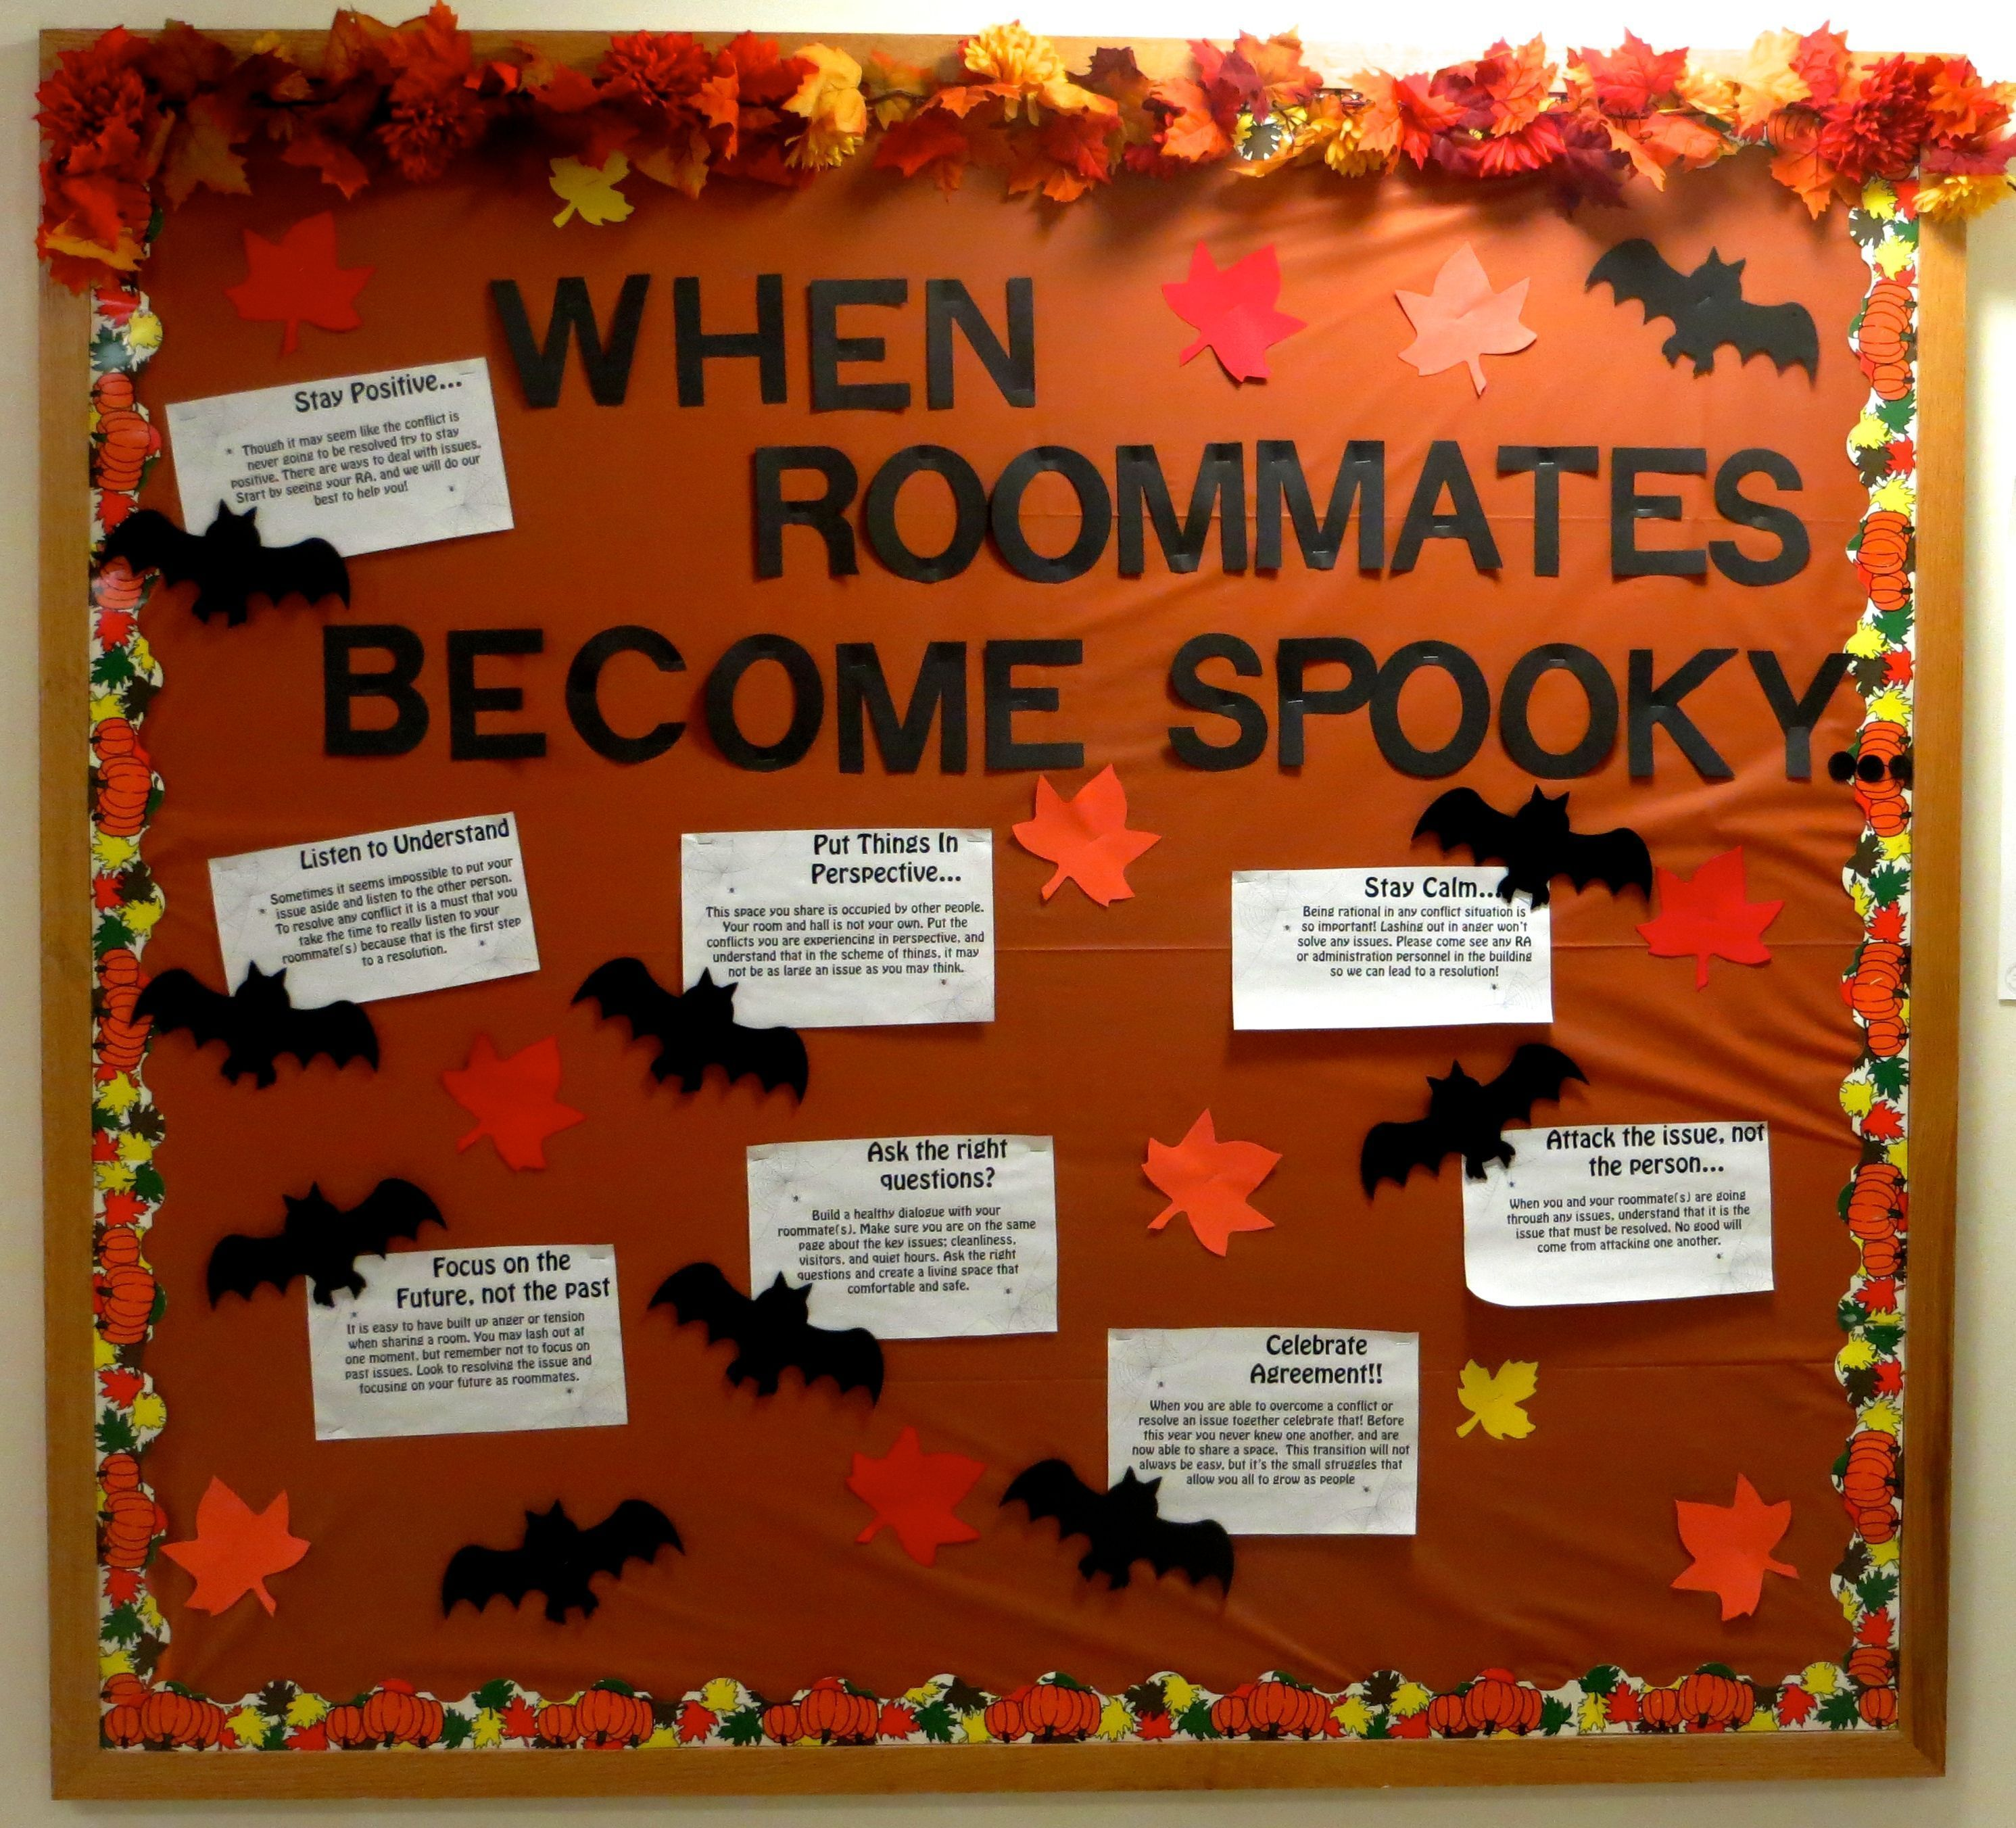 Resident assistant bulletin board for October. Halloween theme: When Roommates Become Spooky. Tips on how to deal with roommate conflict. #halloweenbulletinboards Resident assistant bulletin board for October. Halloween theme: When Roommates Become Spooky. Tips on how to deal with roommate conflict. #rabulletinboards Resident assistant bulletin board for October. Halloween theme: When Roommates Become Spooky. Tips on how to deal with roommate conflict. #halloweenbulletinboards Resident assista #octoberbulletinboards